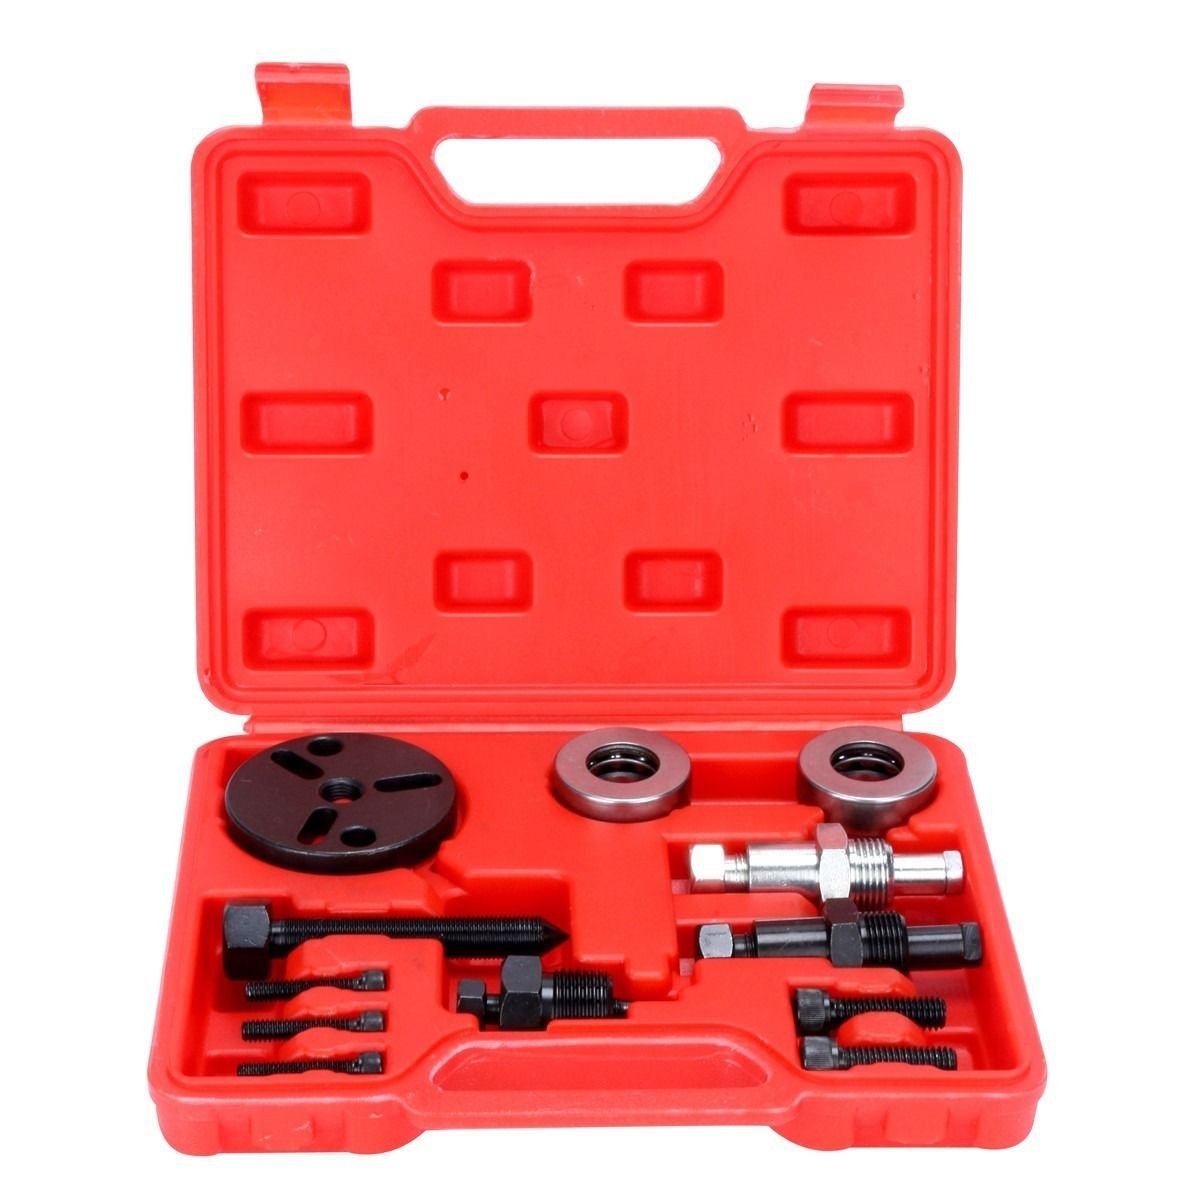 NEW A/C Compressor Clutch Remover Puller Installer Installation Air Condition Tool